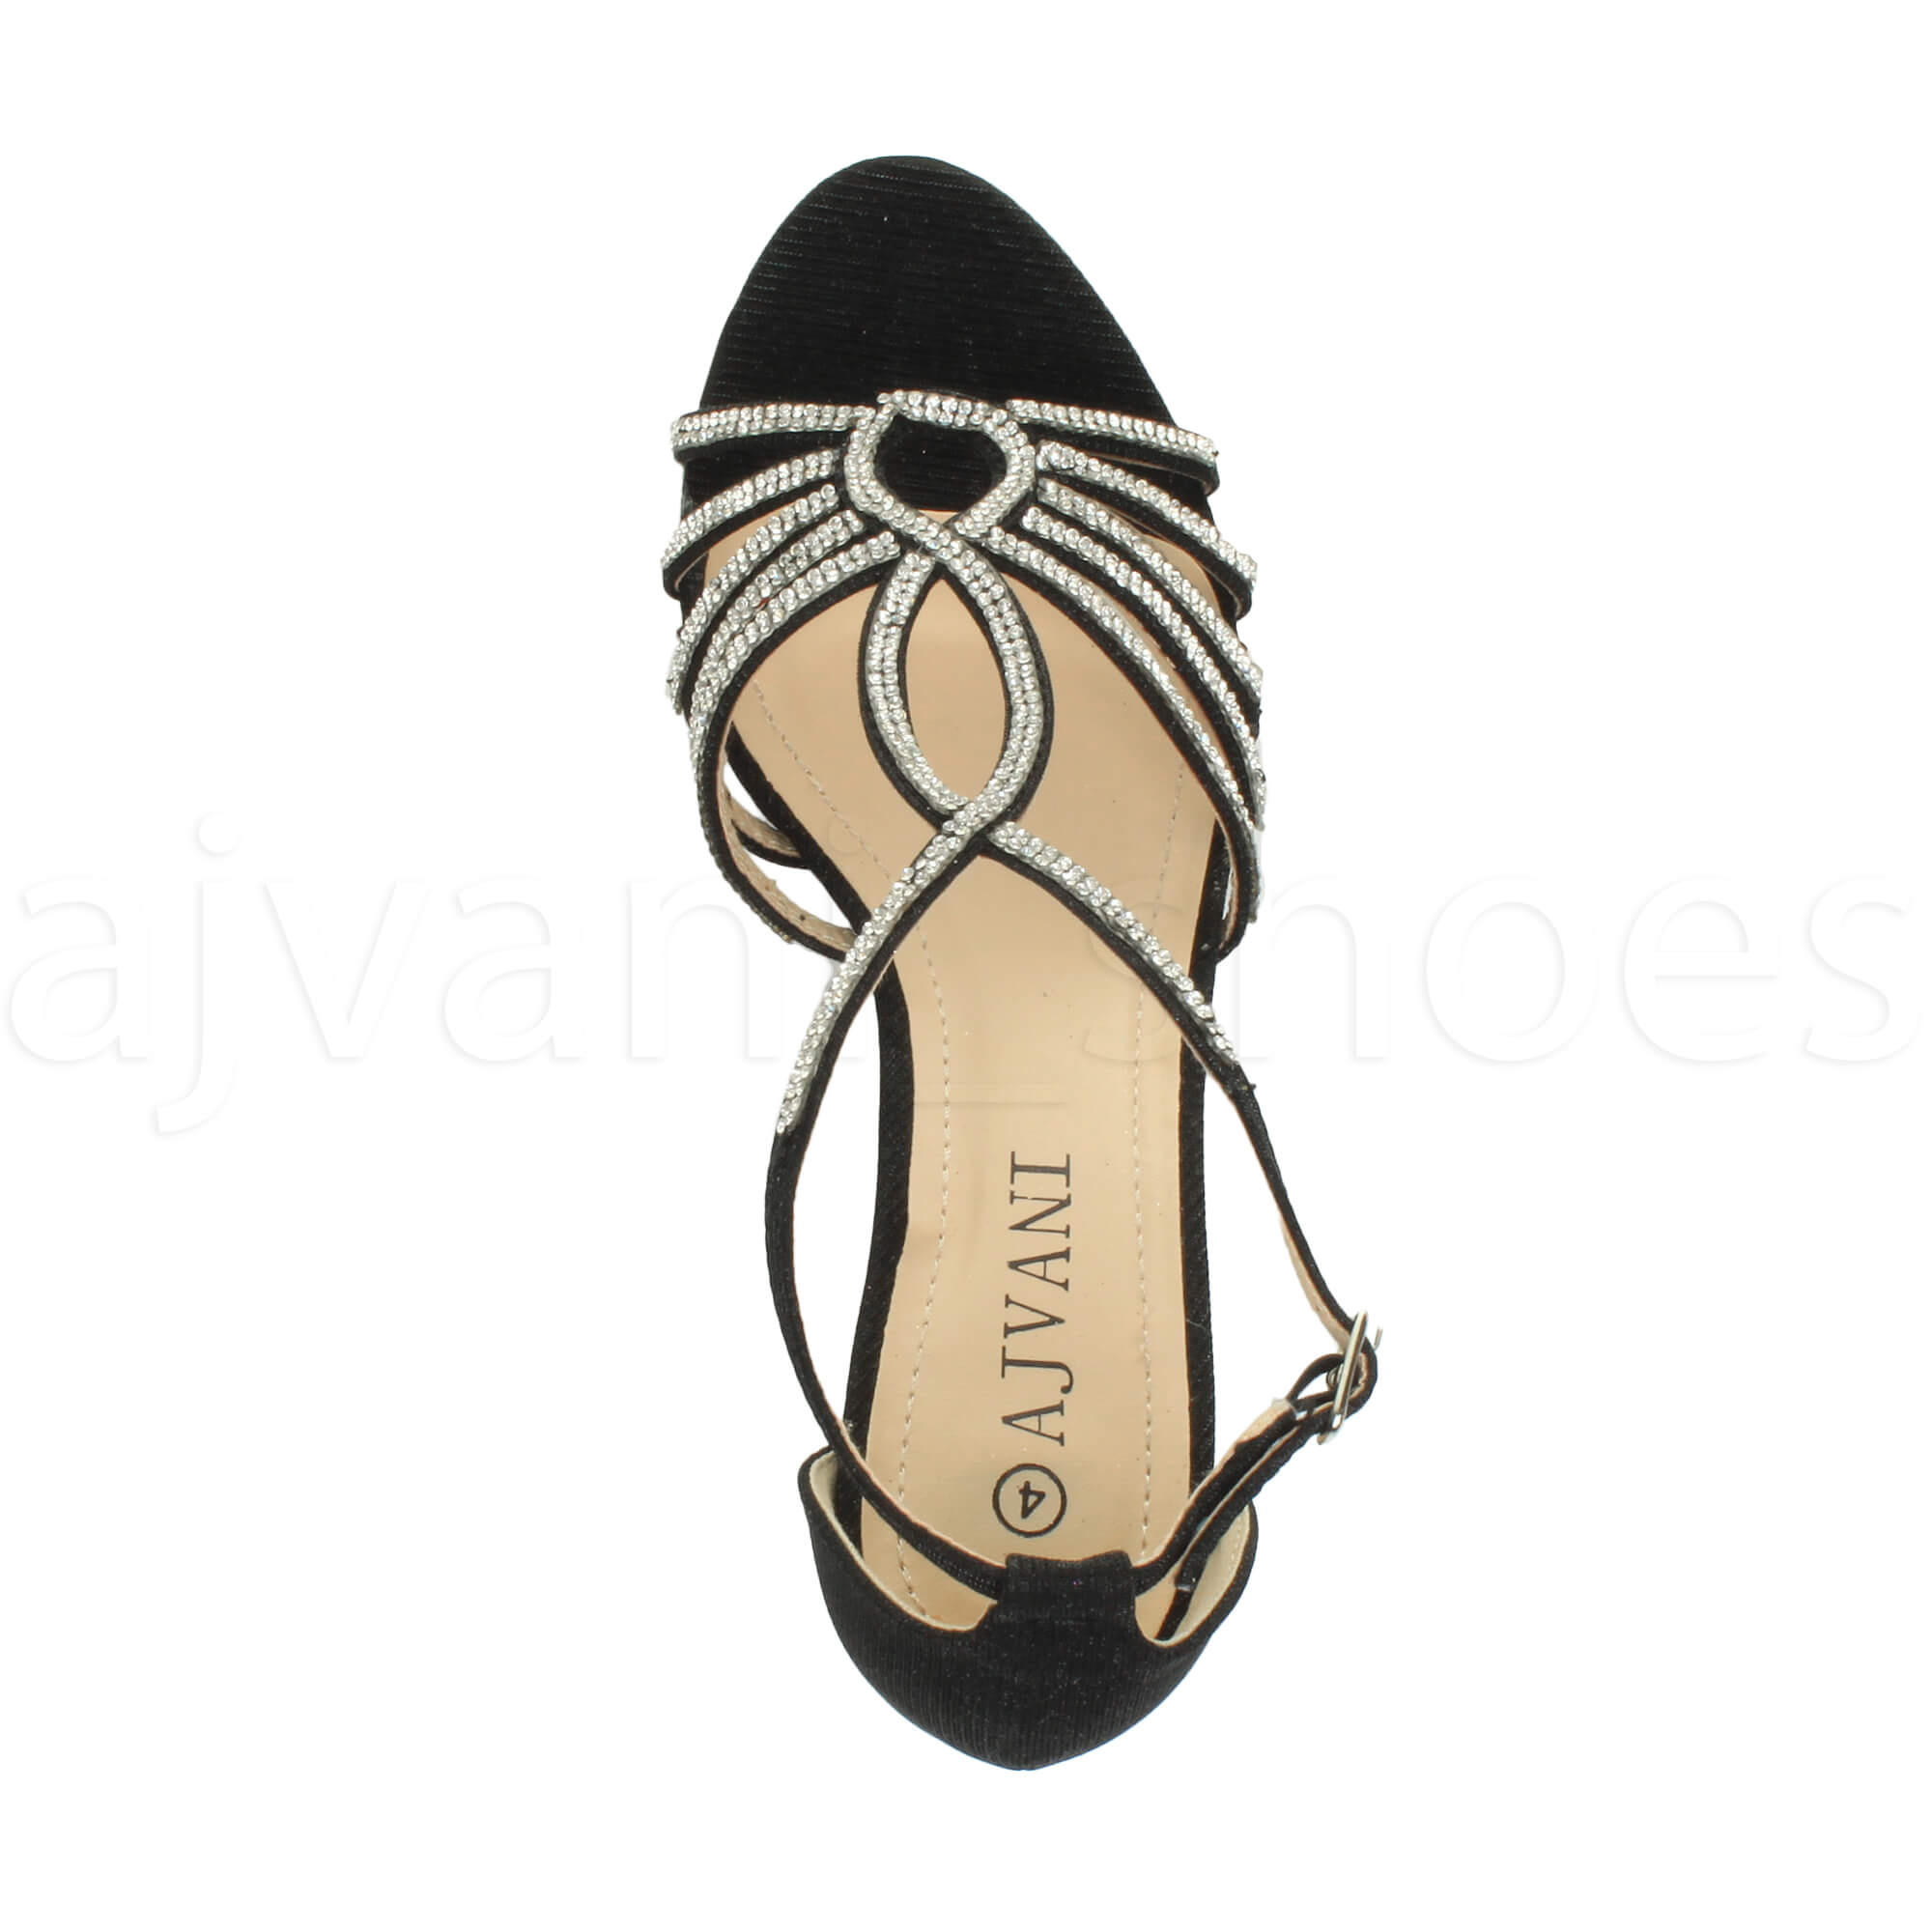 WOMENS-LADIES-MID-HEEL-STRAPPY-DIAMANTE-WEDDING-EVENING-T-BAR-SANDALS-SHOES-SIZE thumbnail 7